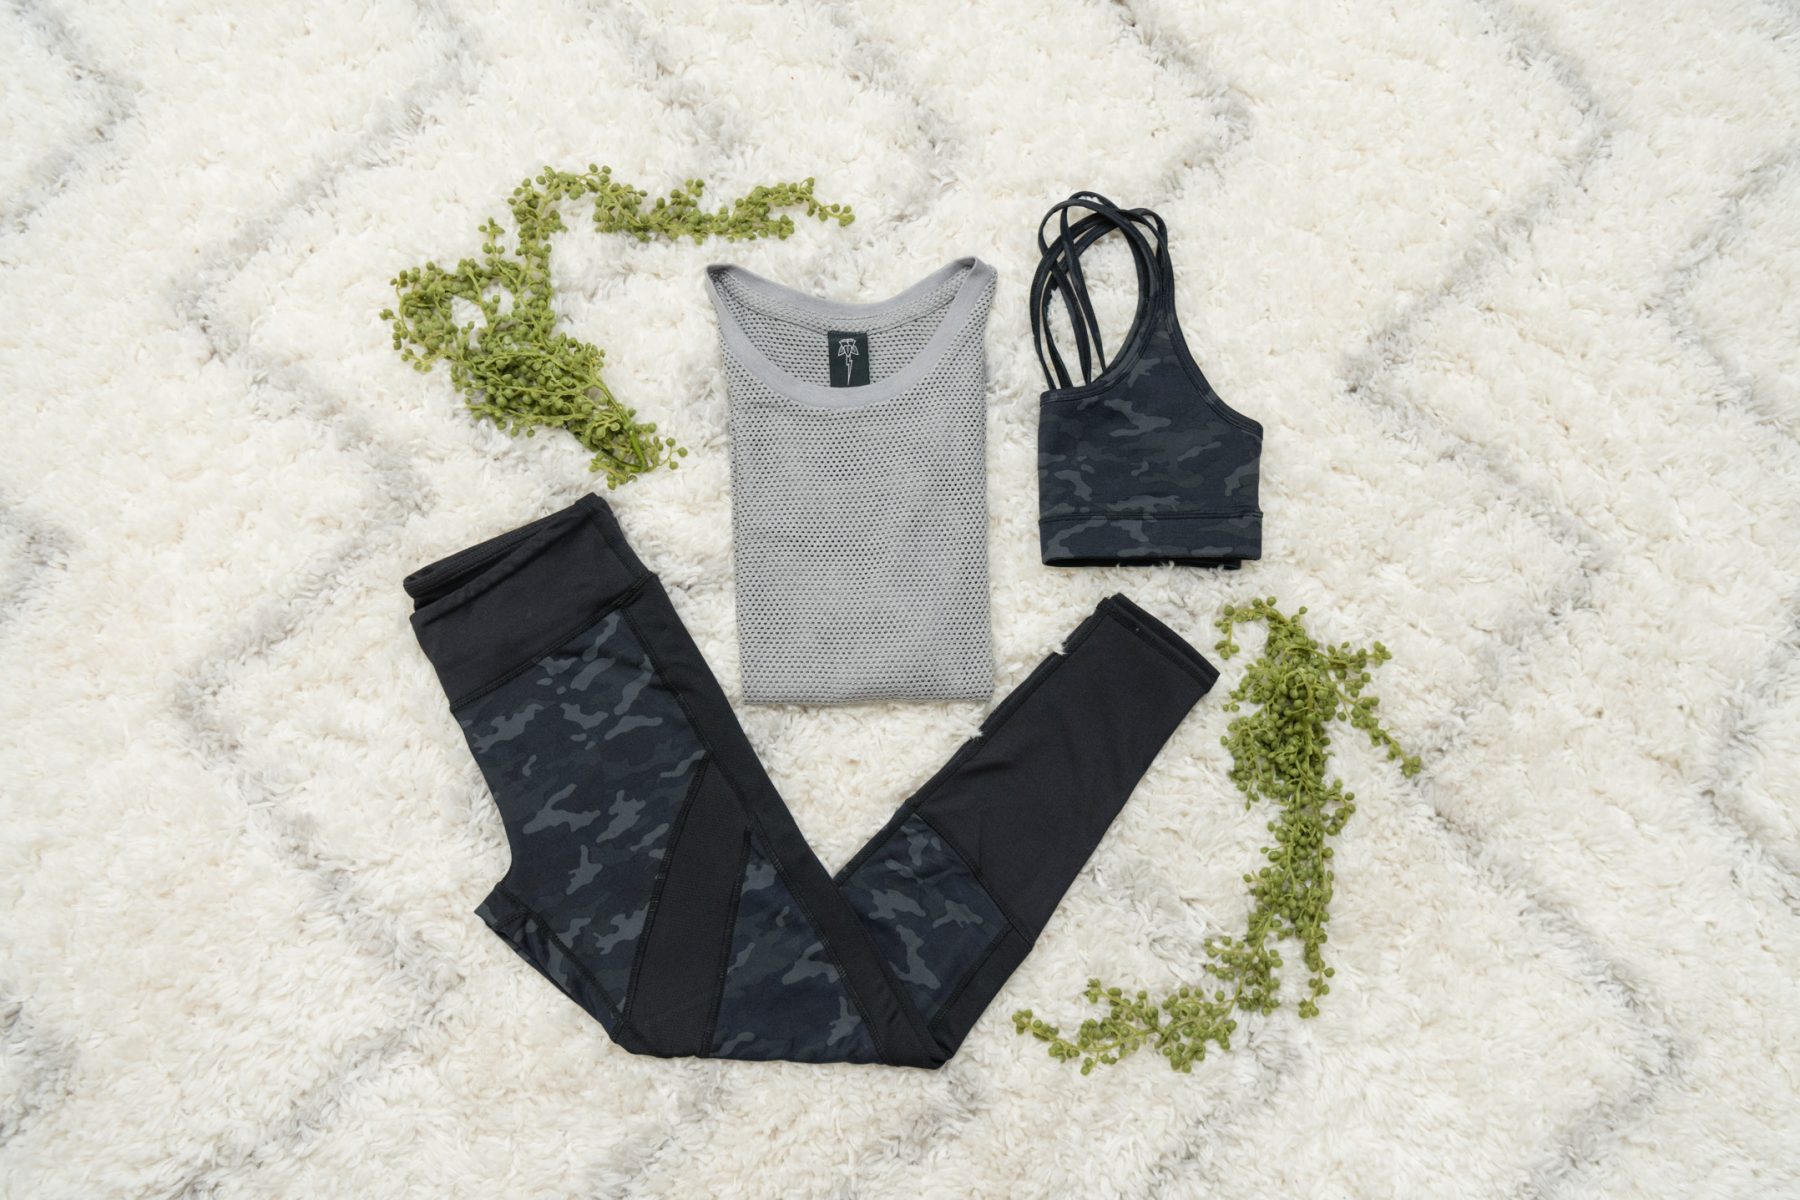 Personal Workout Clothing Stylist